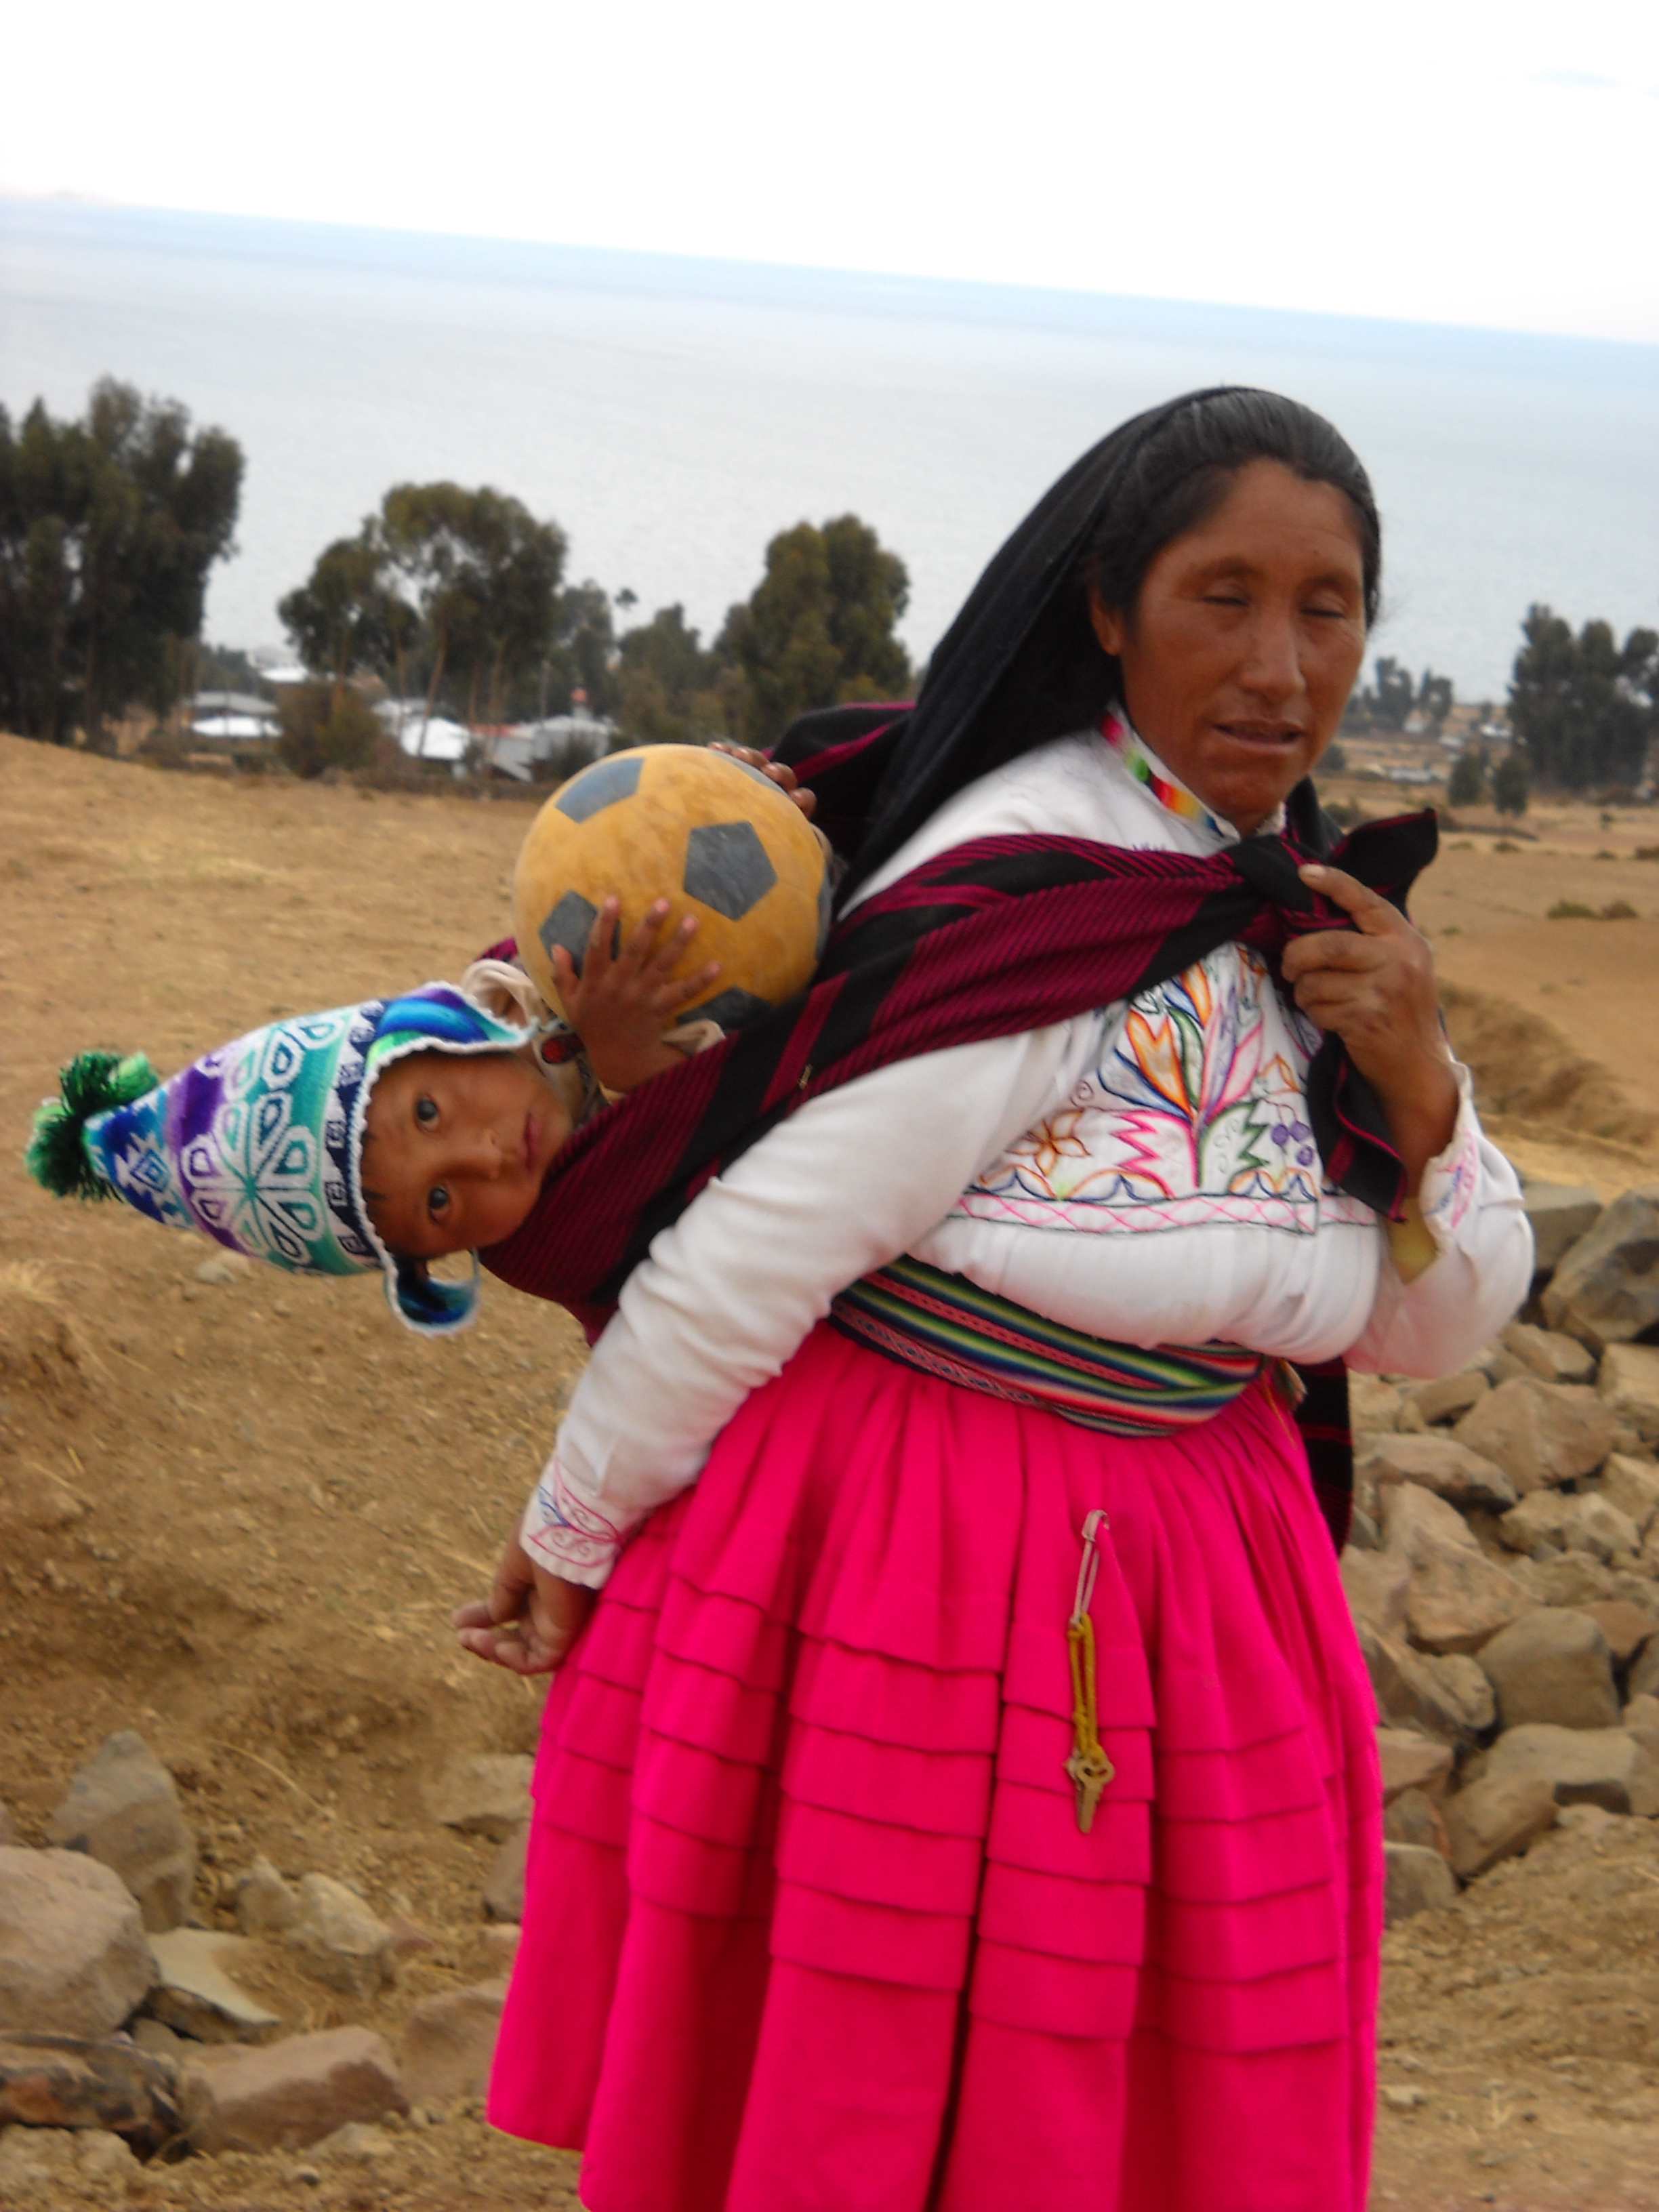 Lake Titicaca, Peru. Local attire for woman who hikes up a mountain and back to sell goods that are in the sack on her back. Soccer is a local pastime and from a young age children are enthusiastic about playing.